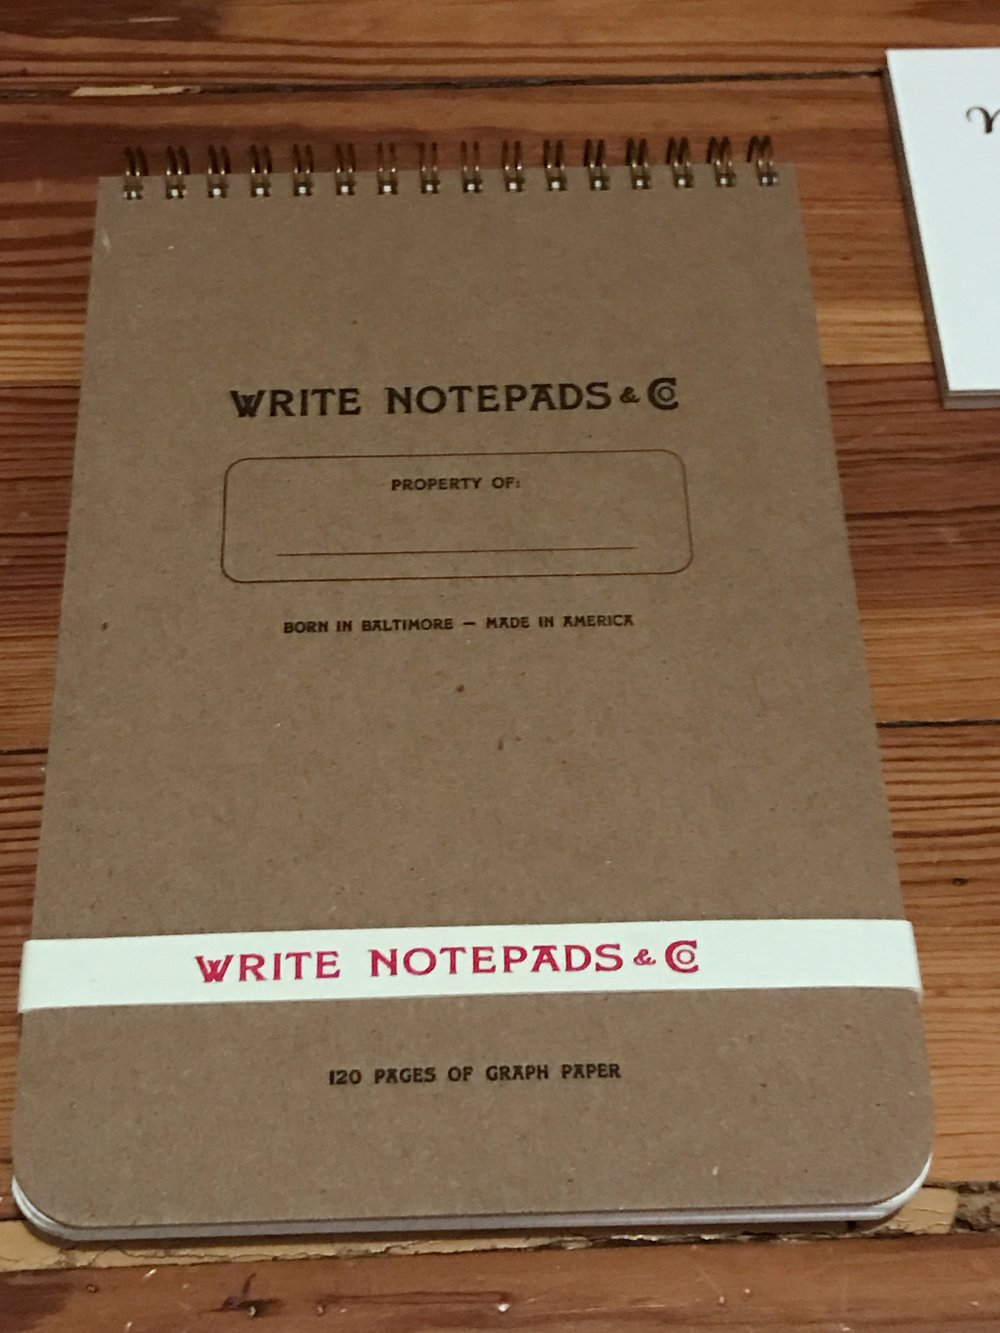 The Write Notepads Steno also comes with a sweet rubber band for keeping your shit together.